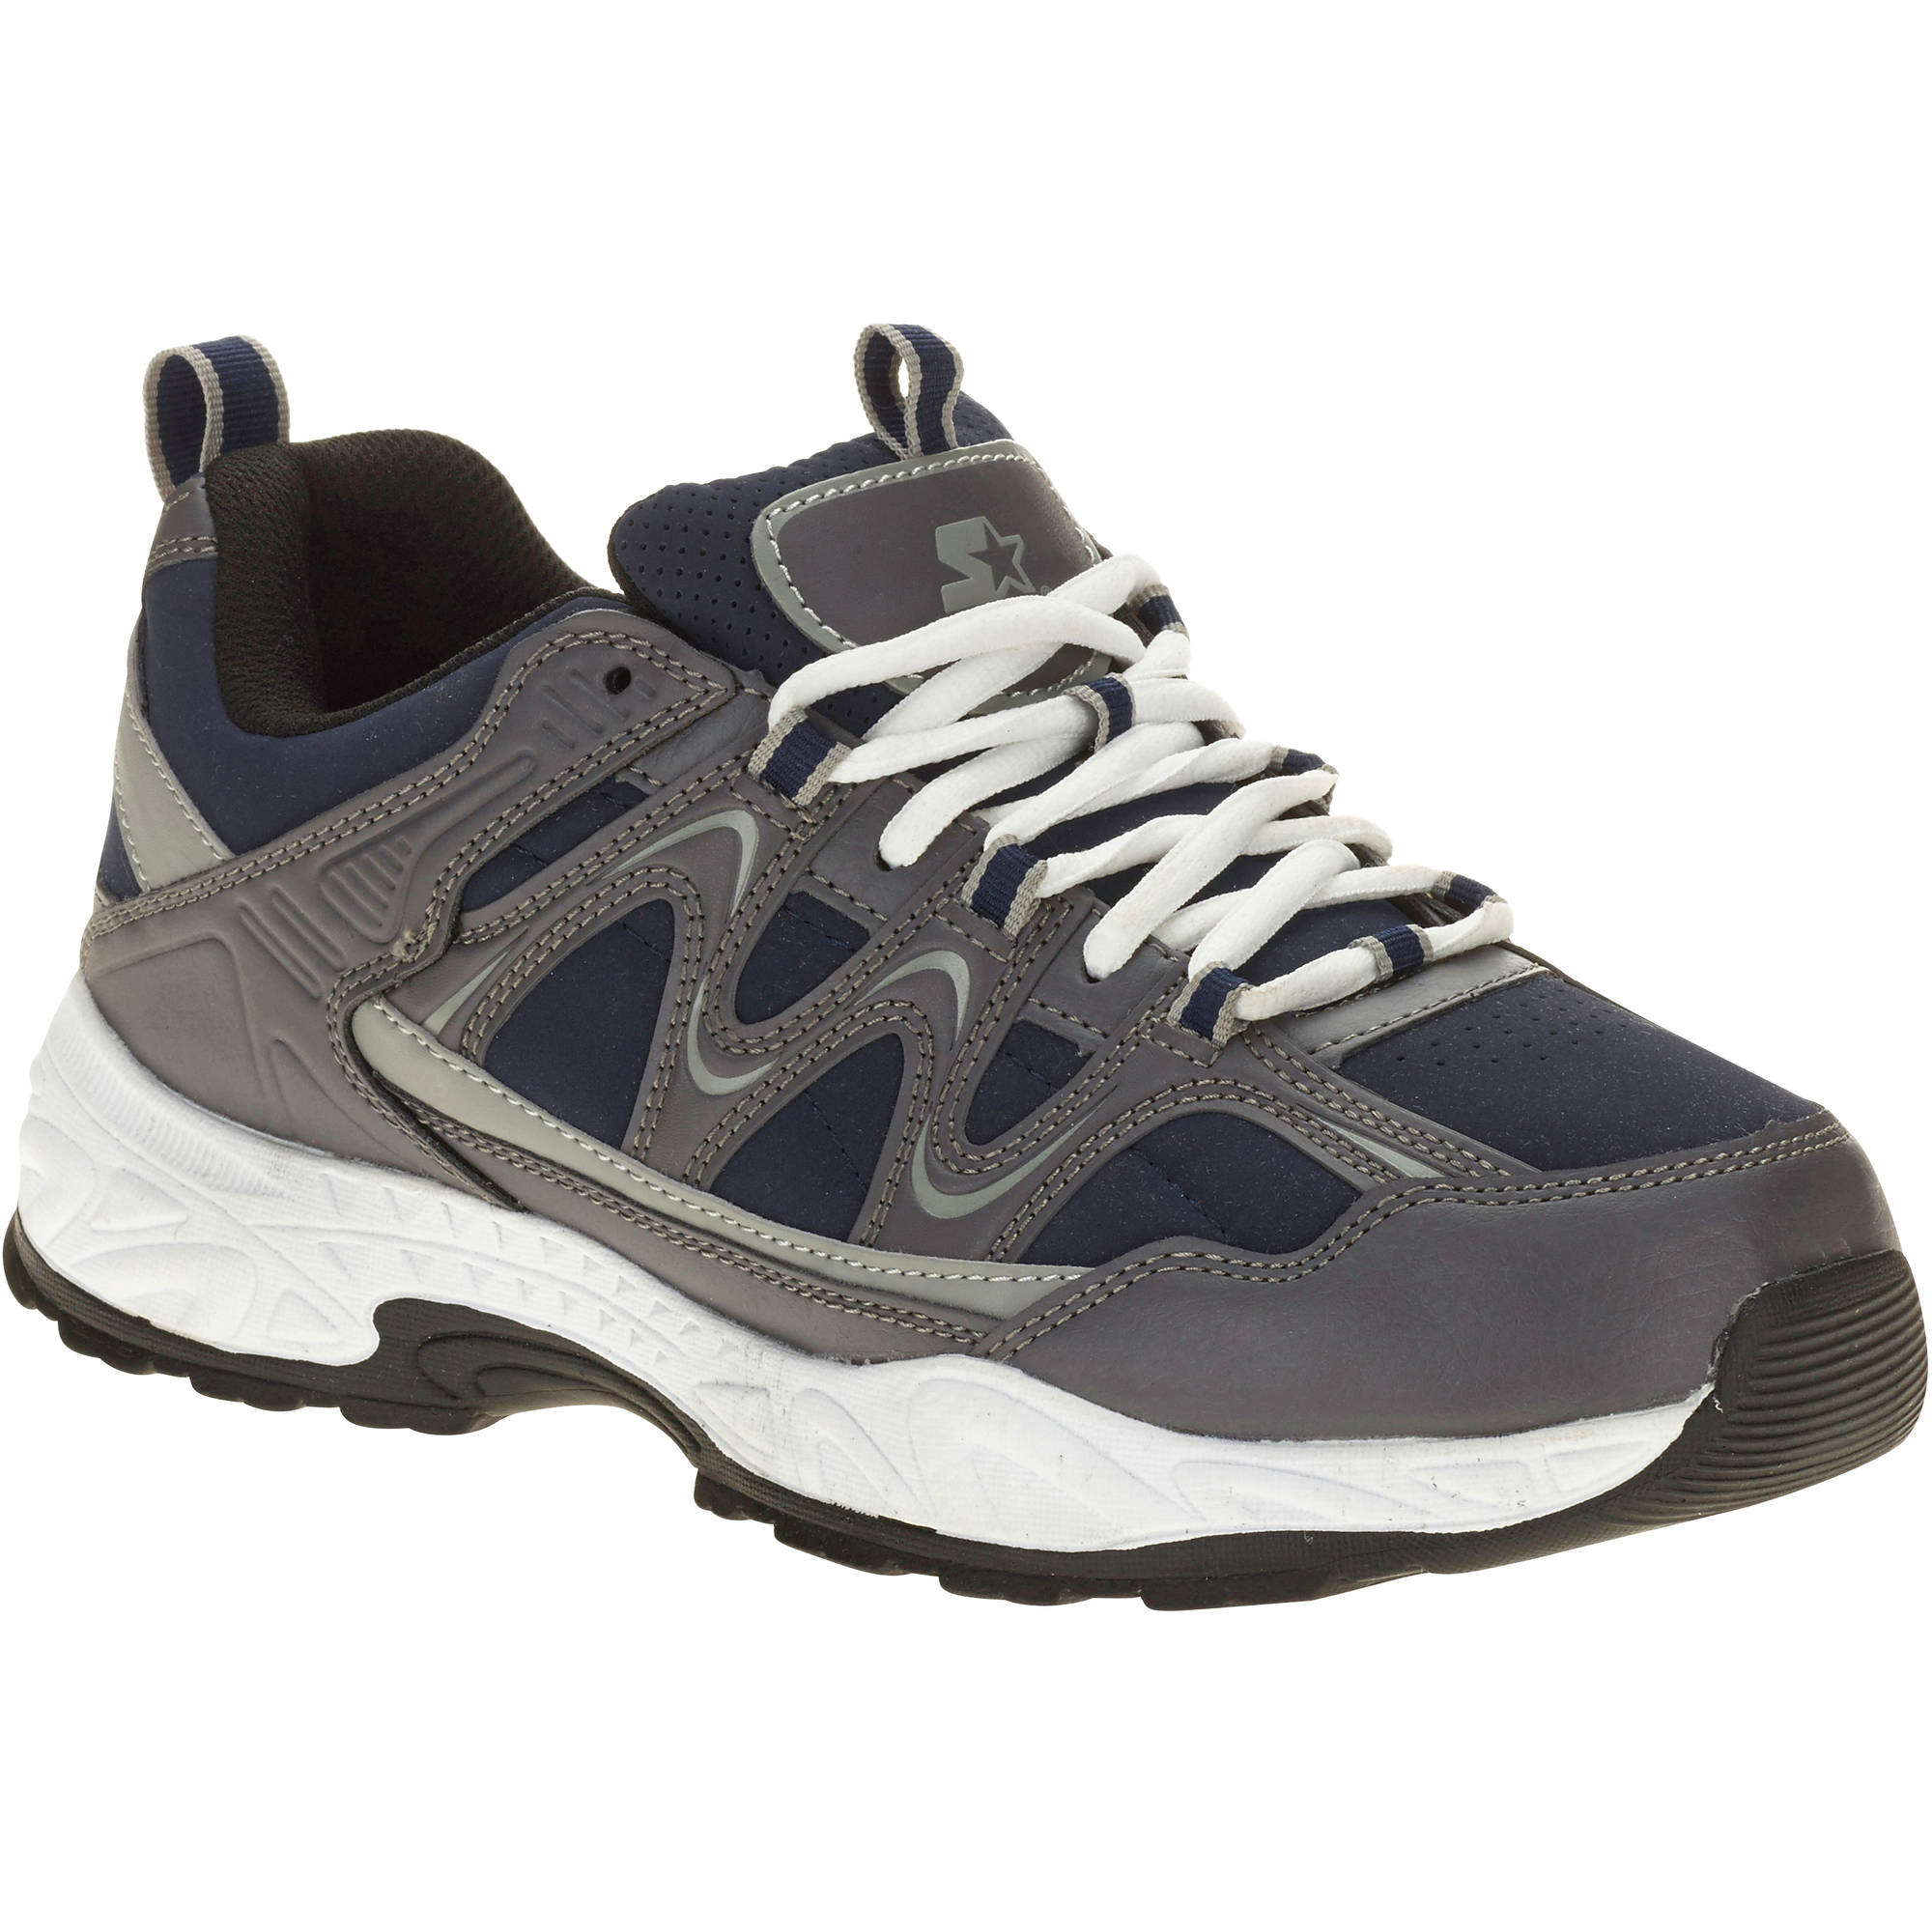 Starter Men's Memory Foam Wide Width Athletic Shoe